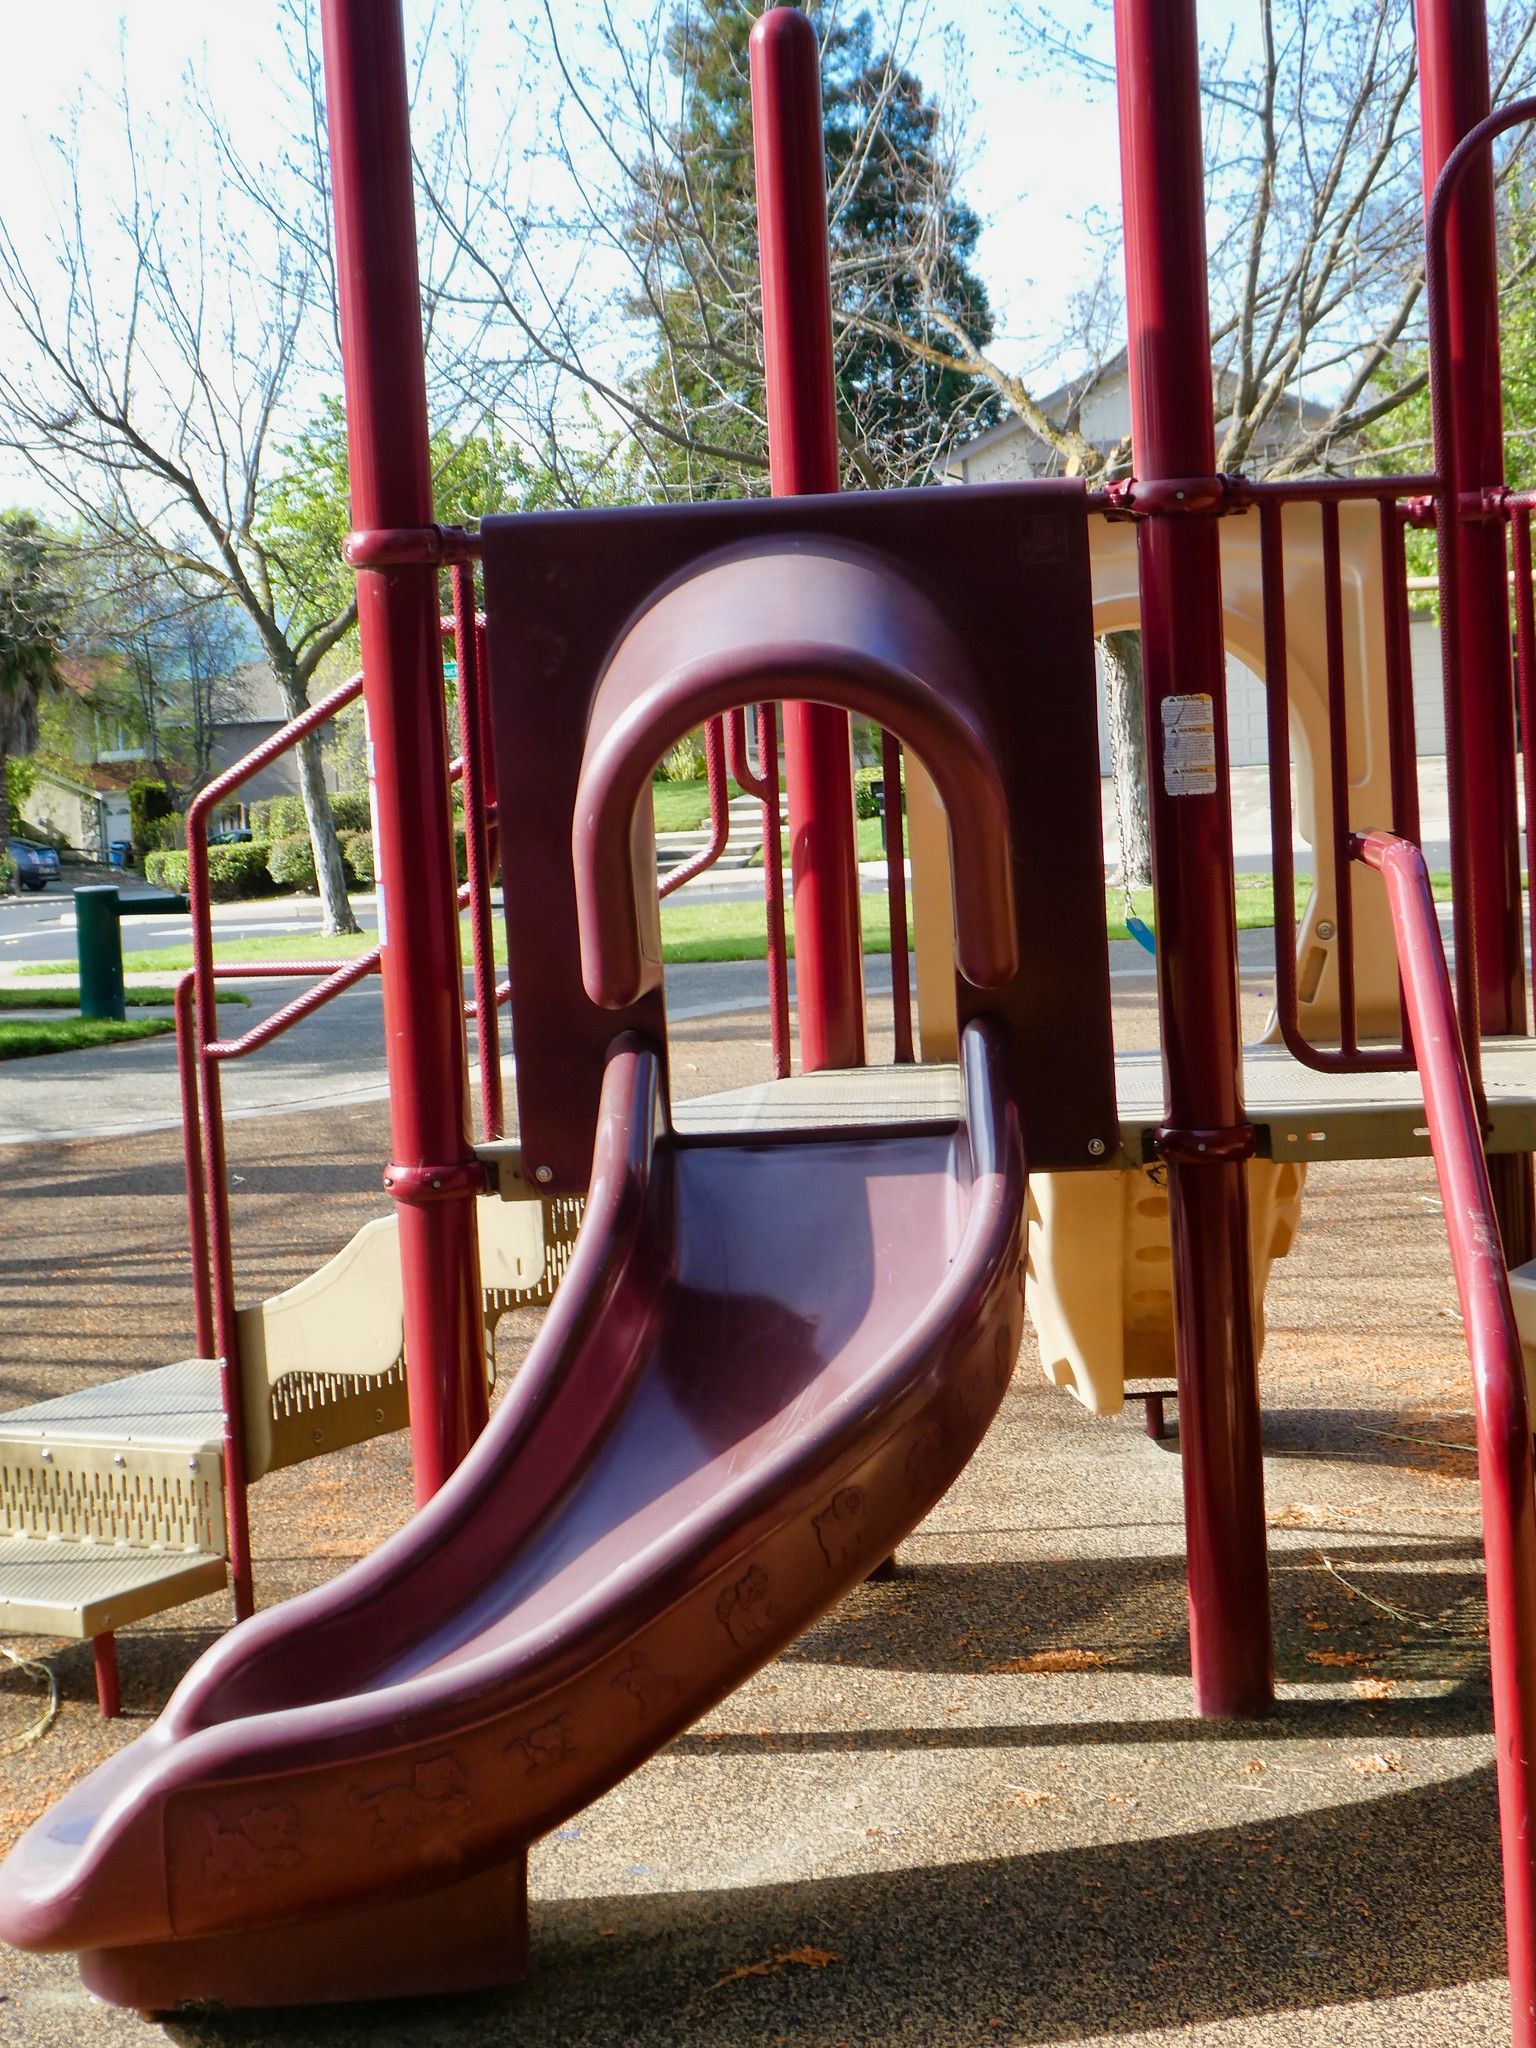 2019-03-28 - Street Photography - Structures - Playground Equipment, Set 2